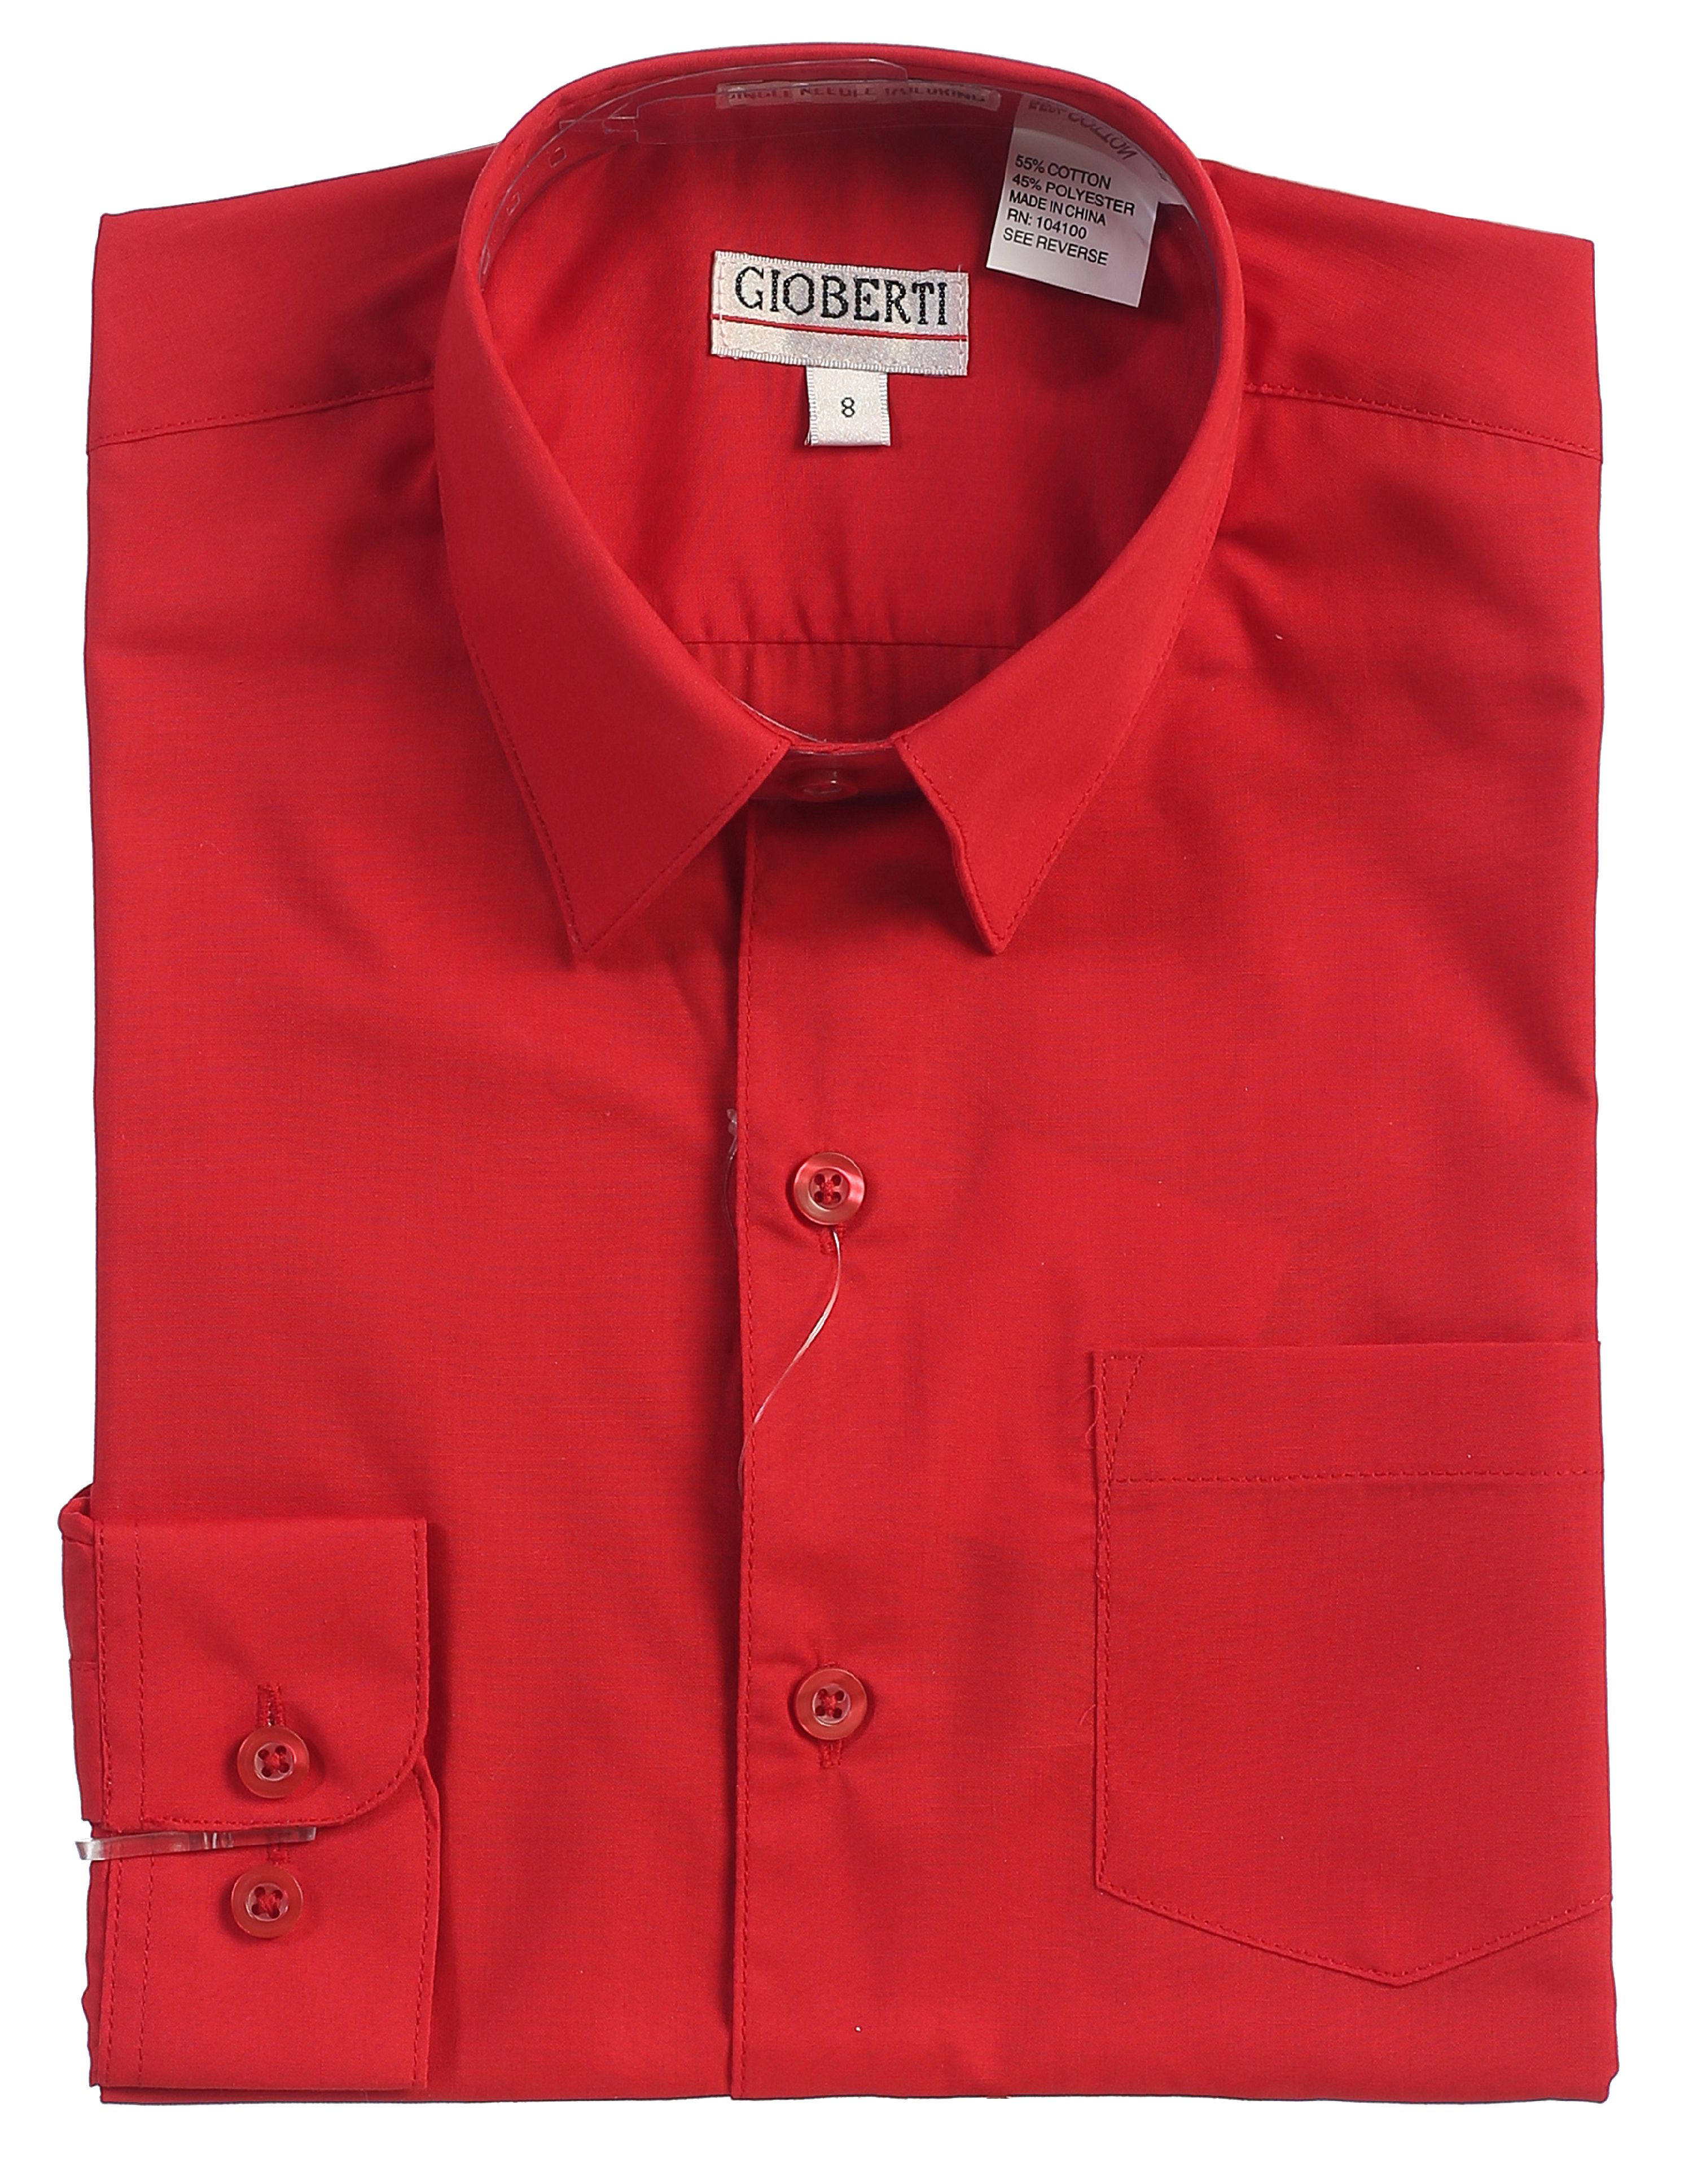 Gioberti Boys Solid Button Up Long Sleeve Dress Shirt